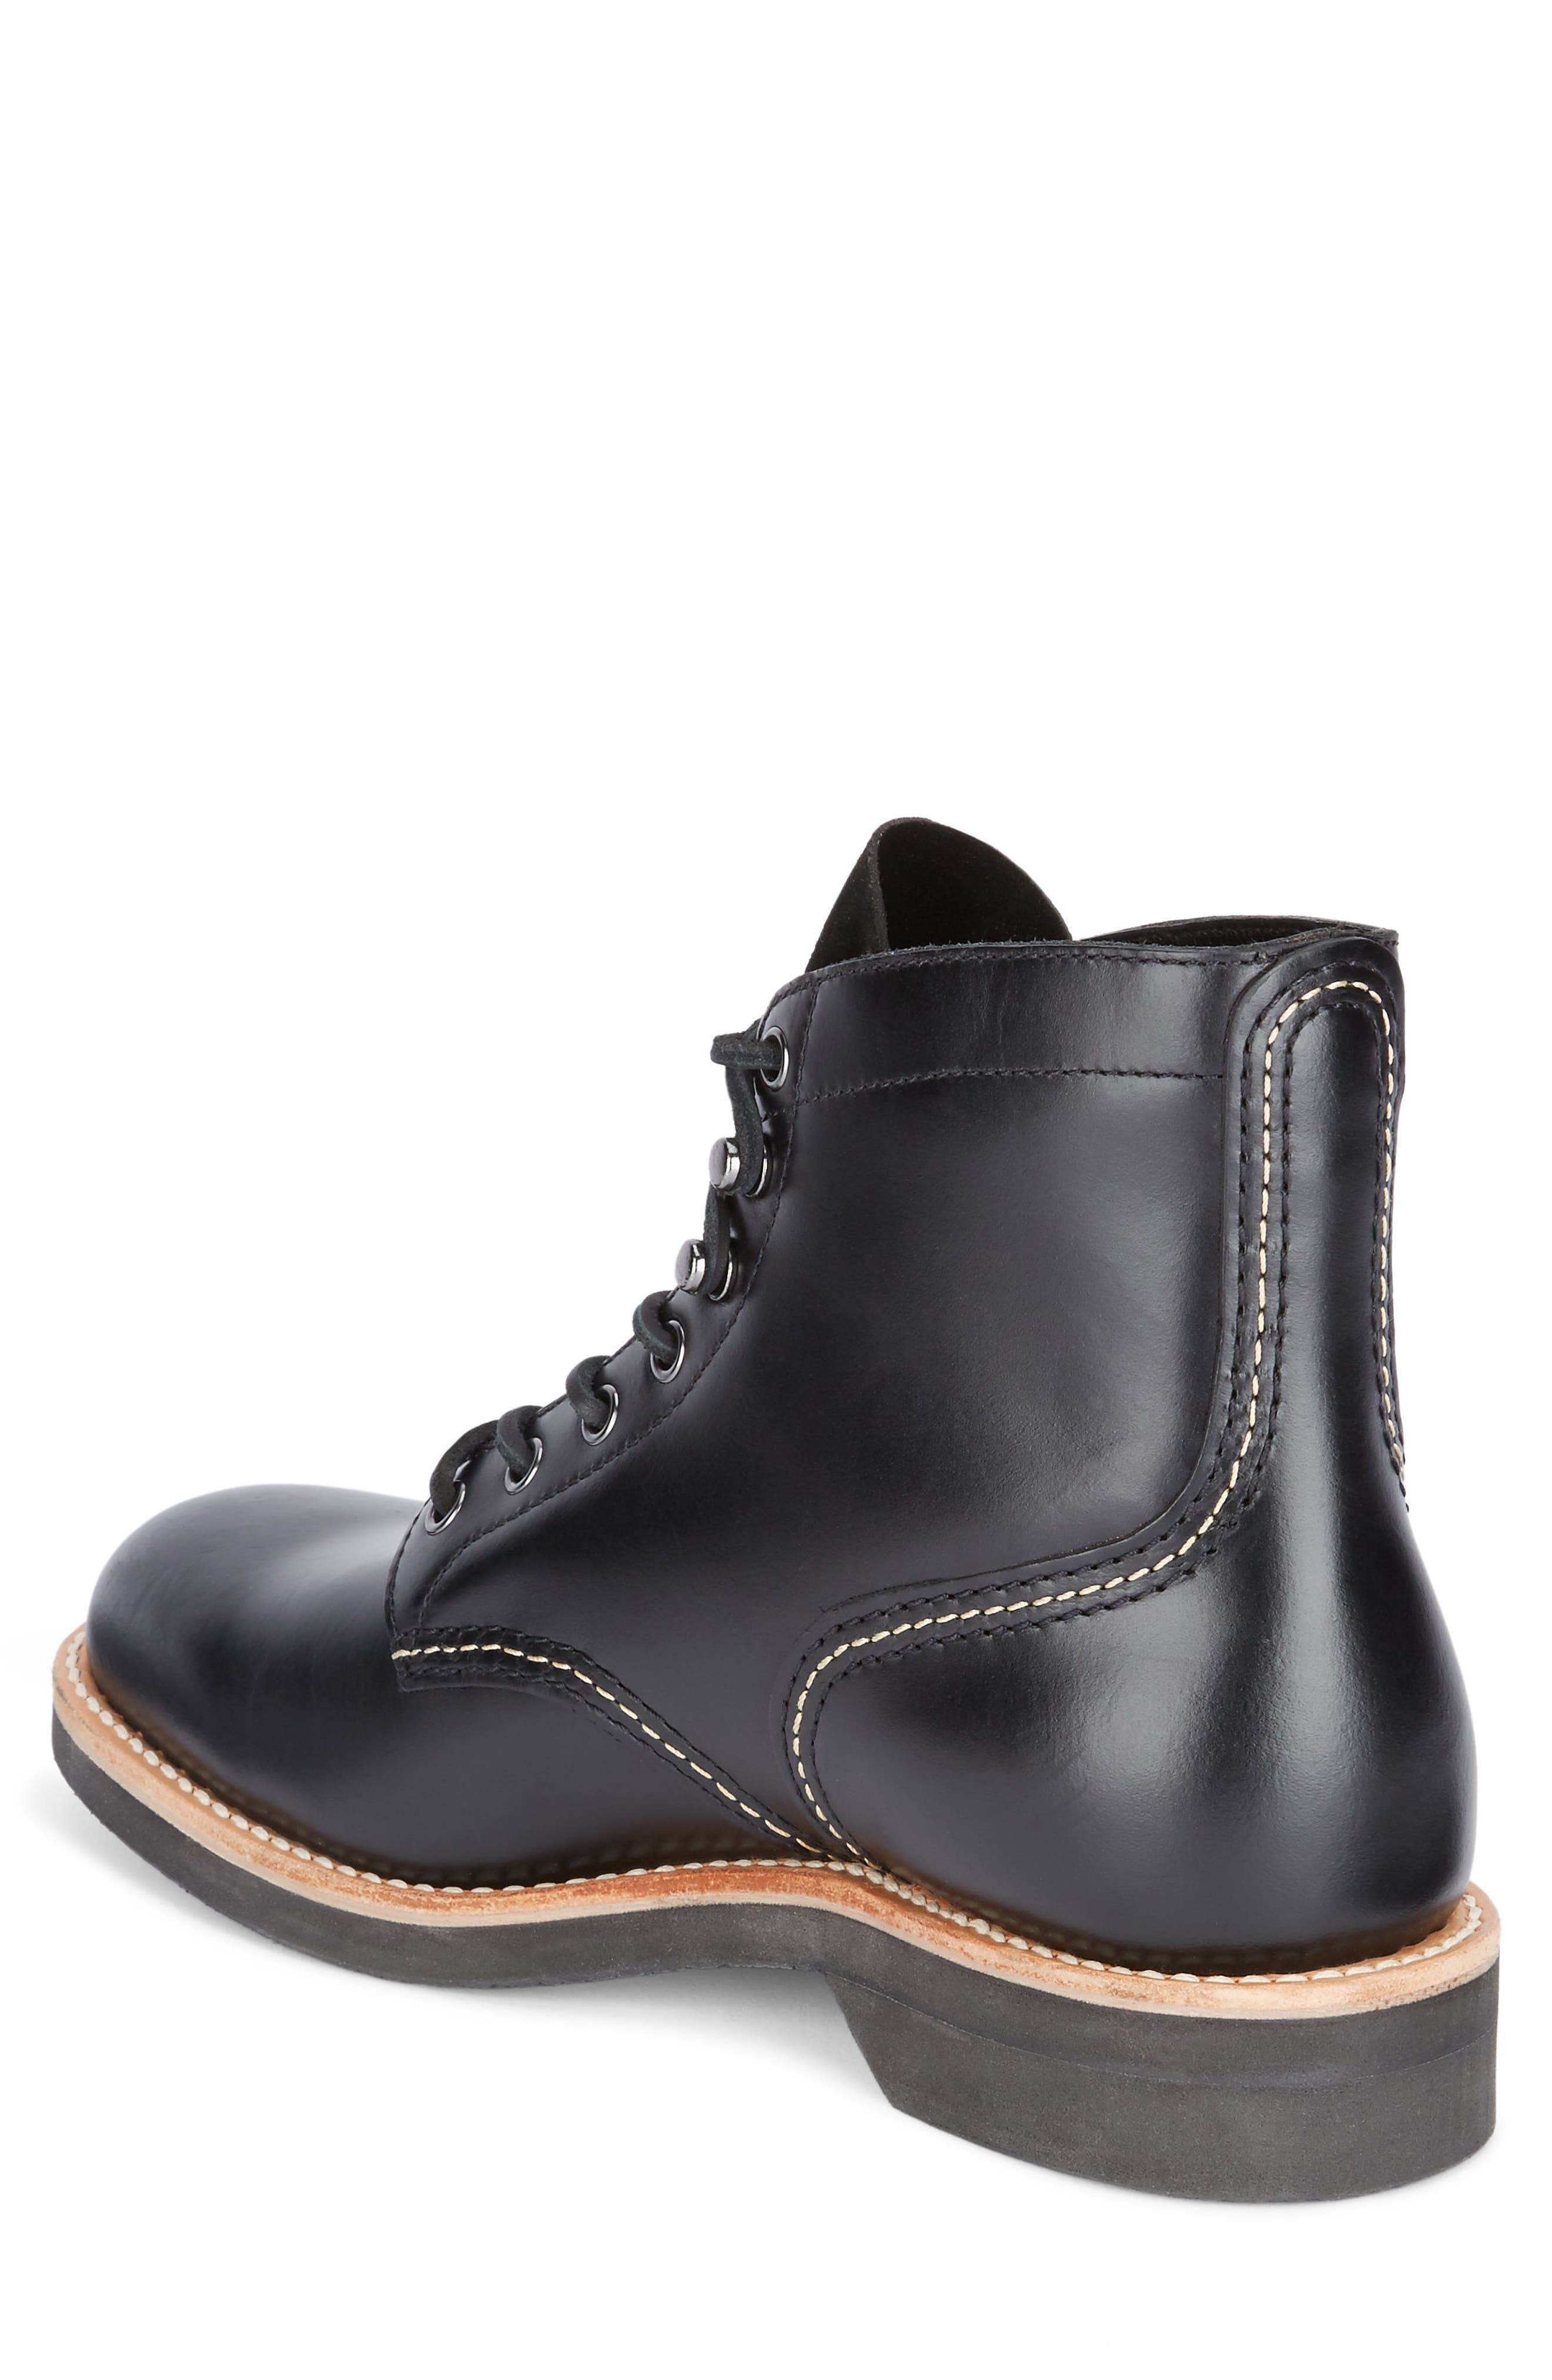 Reid Plain Toe Boot,                             Alternate thumbnail 3, color,